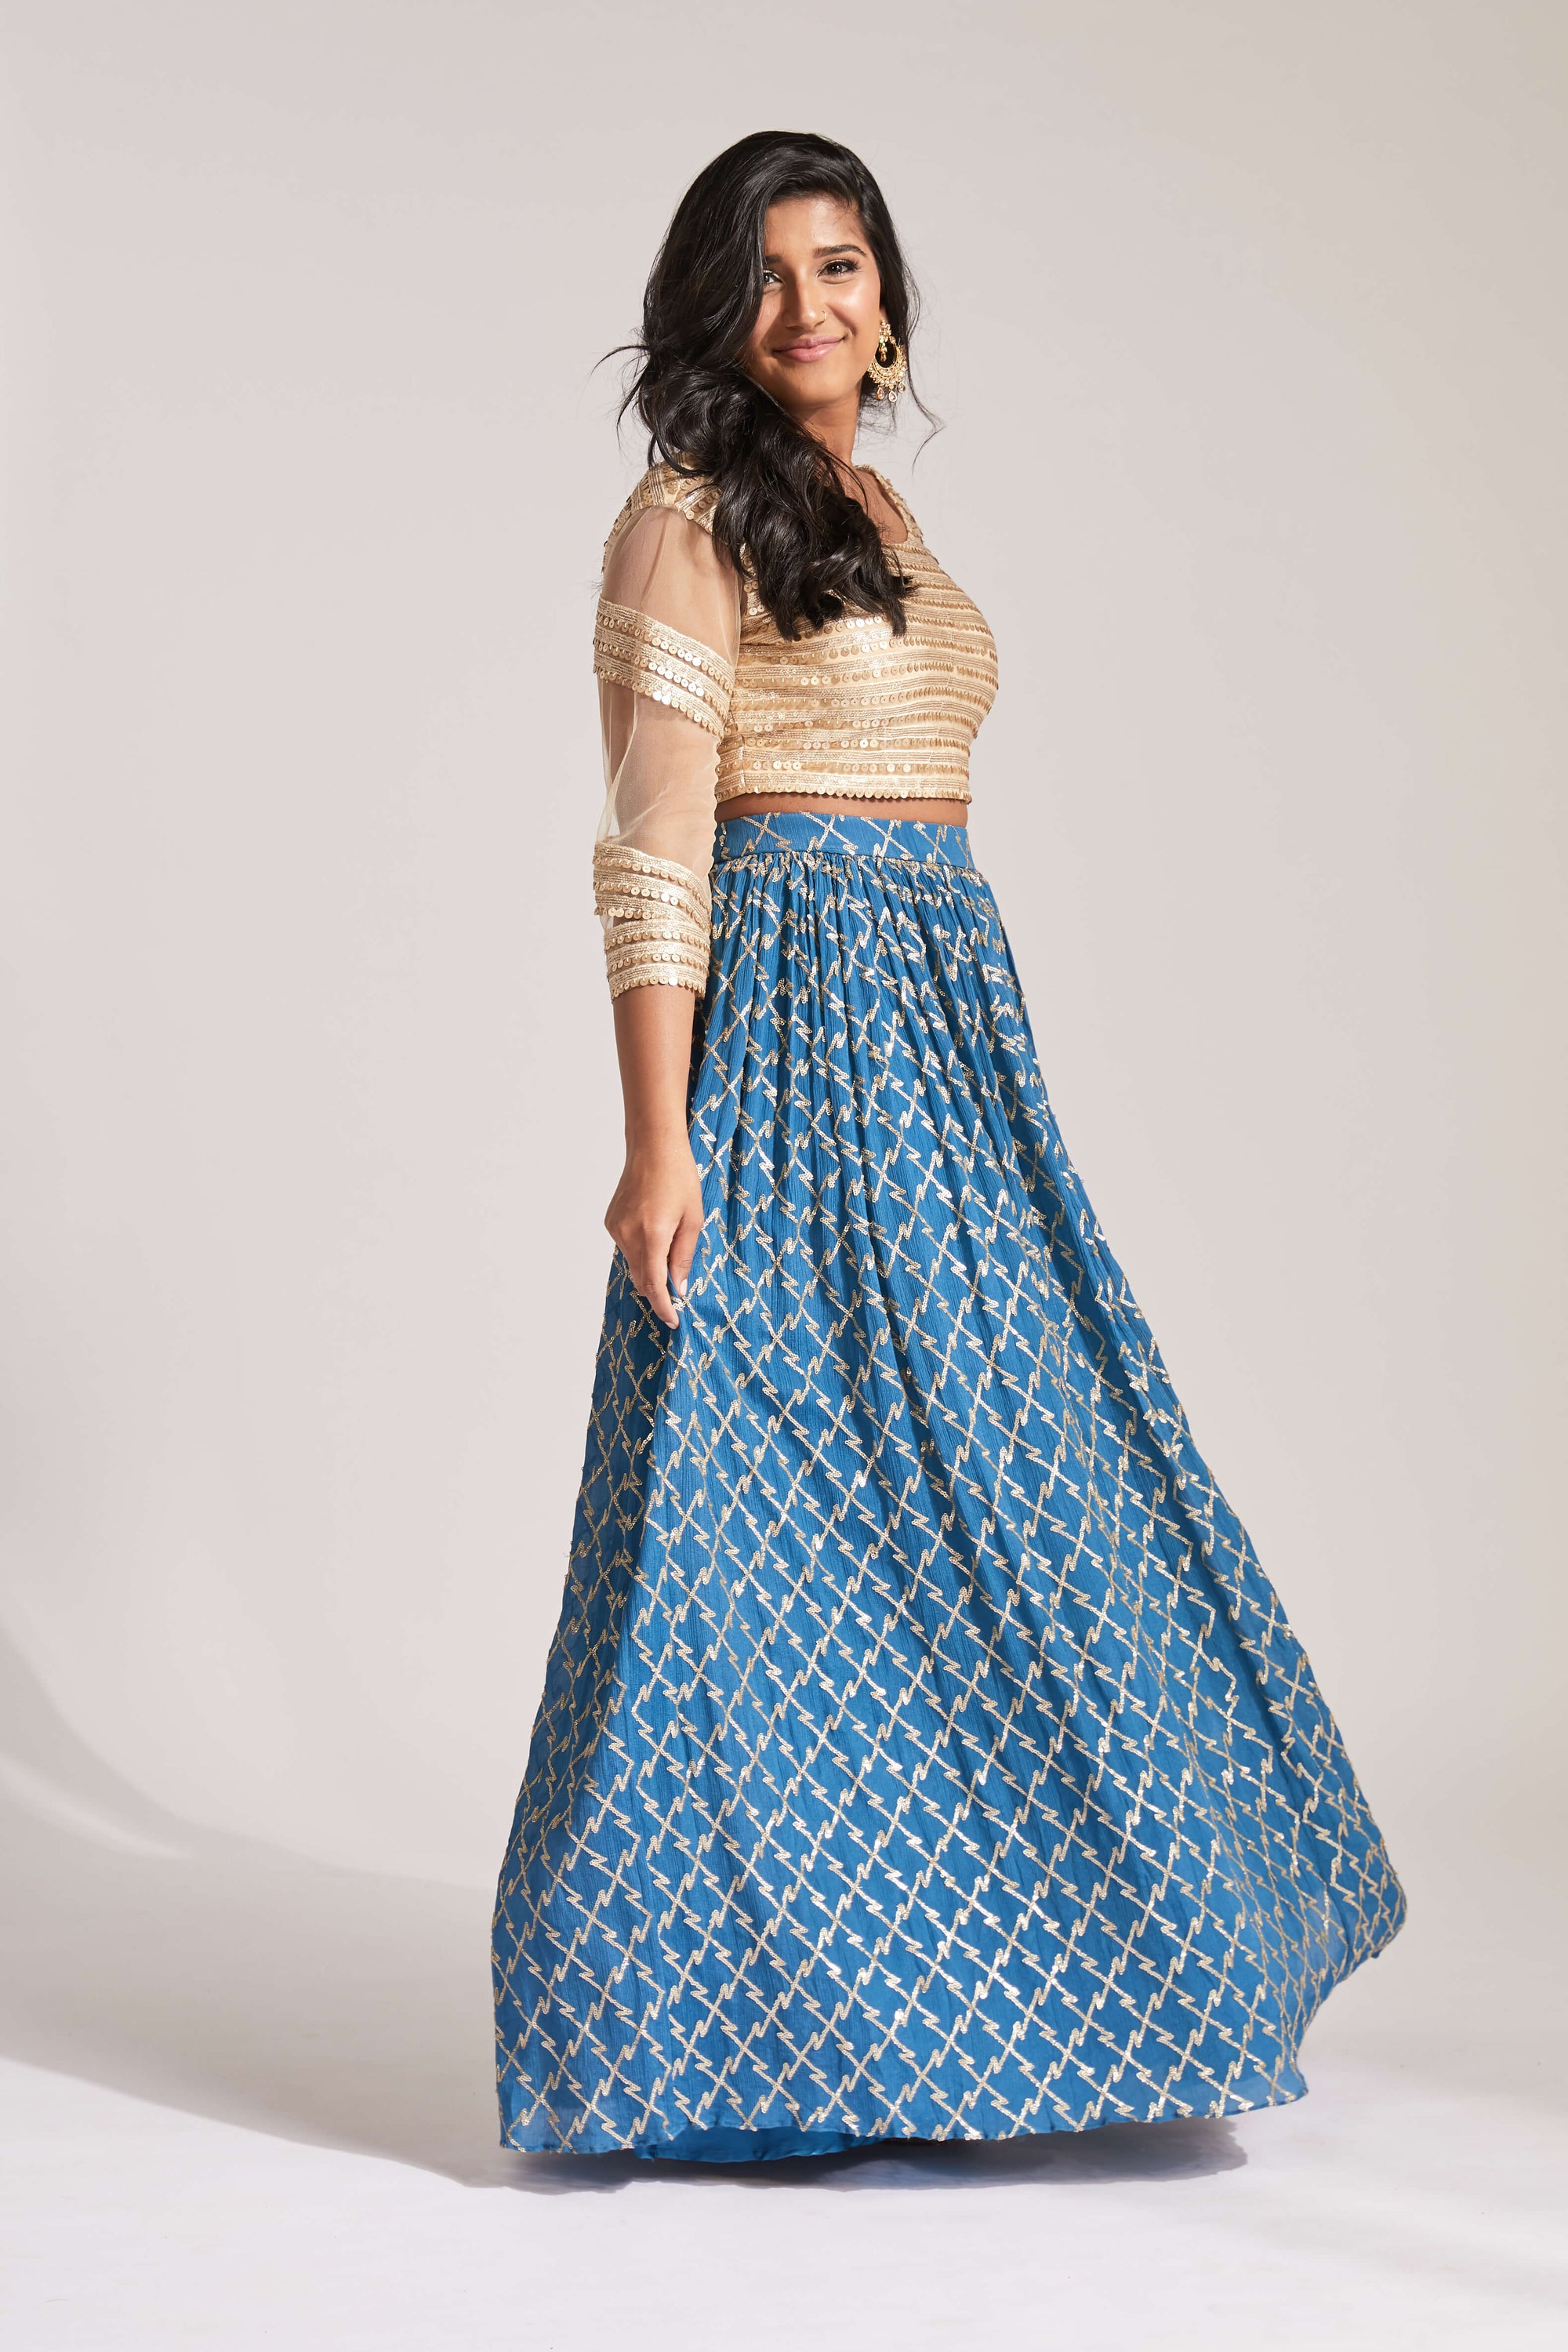 Lehenga with blue and gold skirt and gold sequin 3/4 sleeve blouse